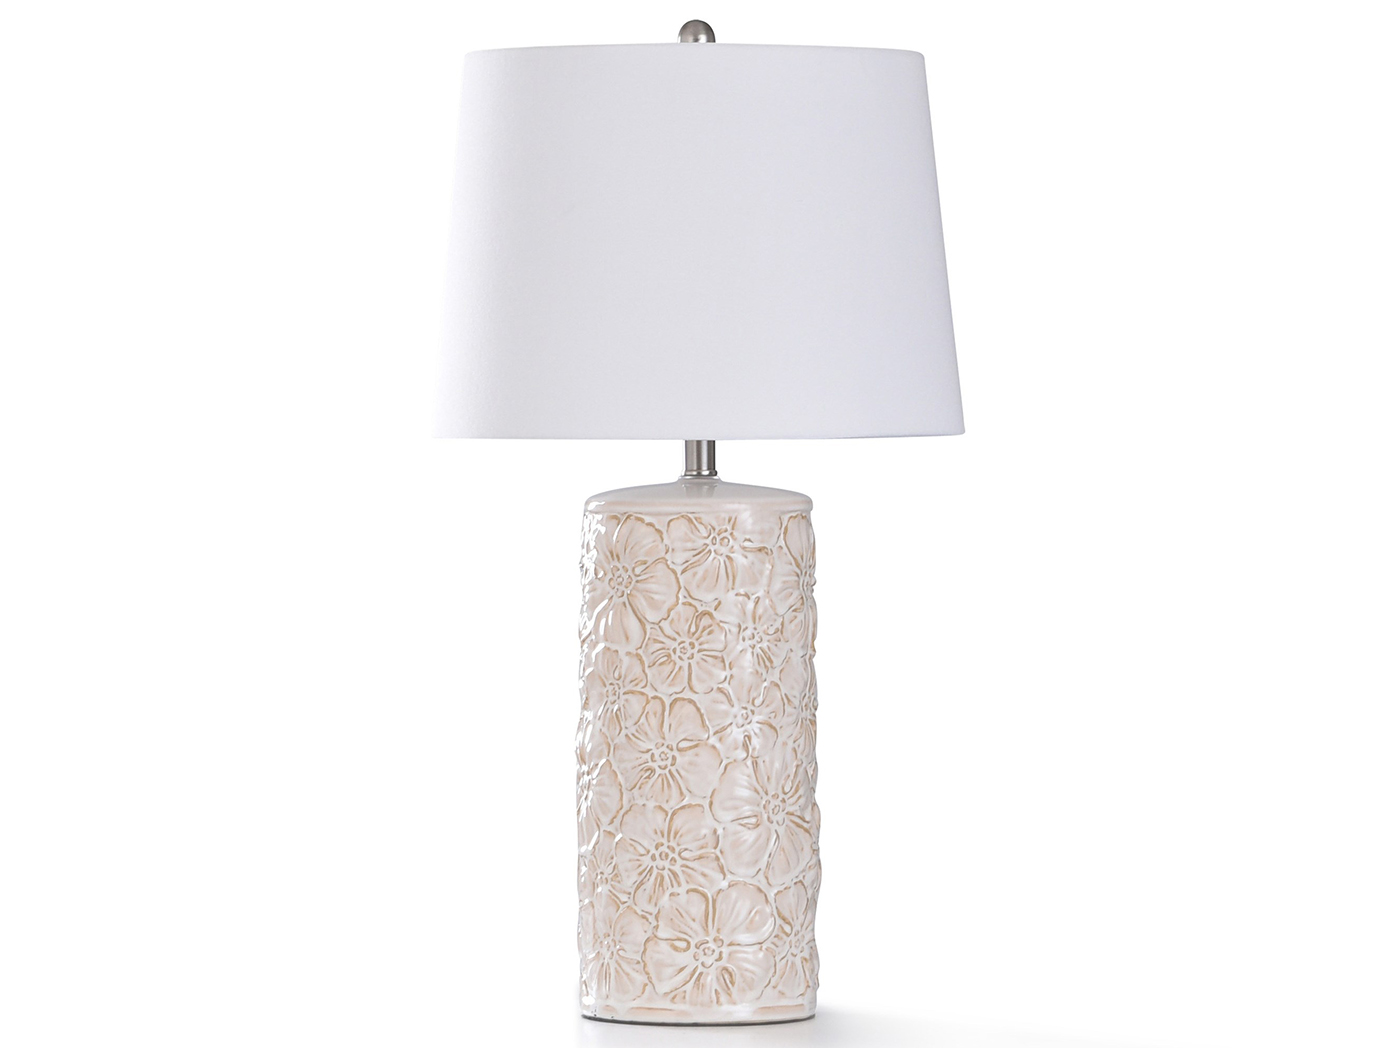 "Cream Floral Ceramic Table Lamp 31""H"